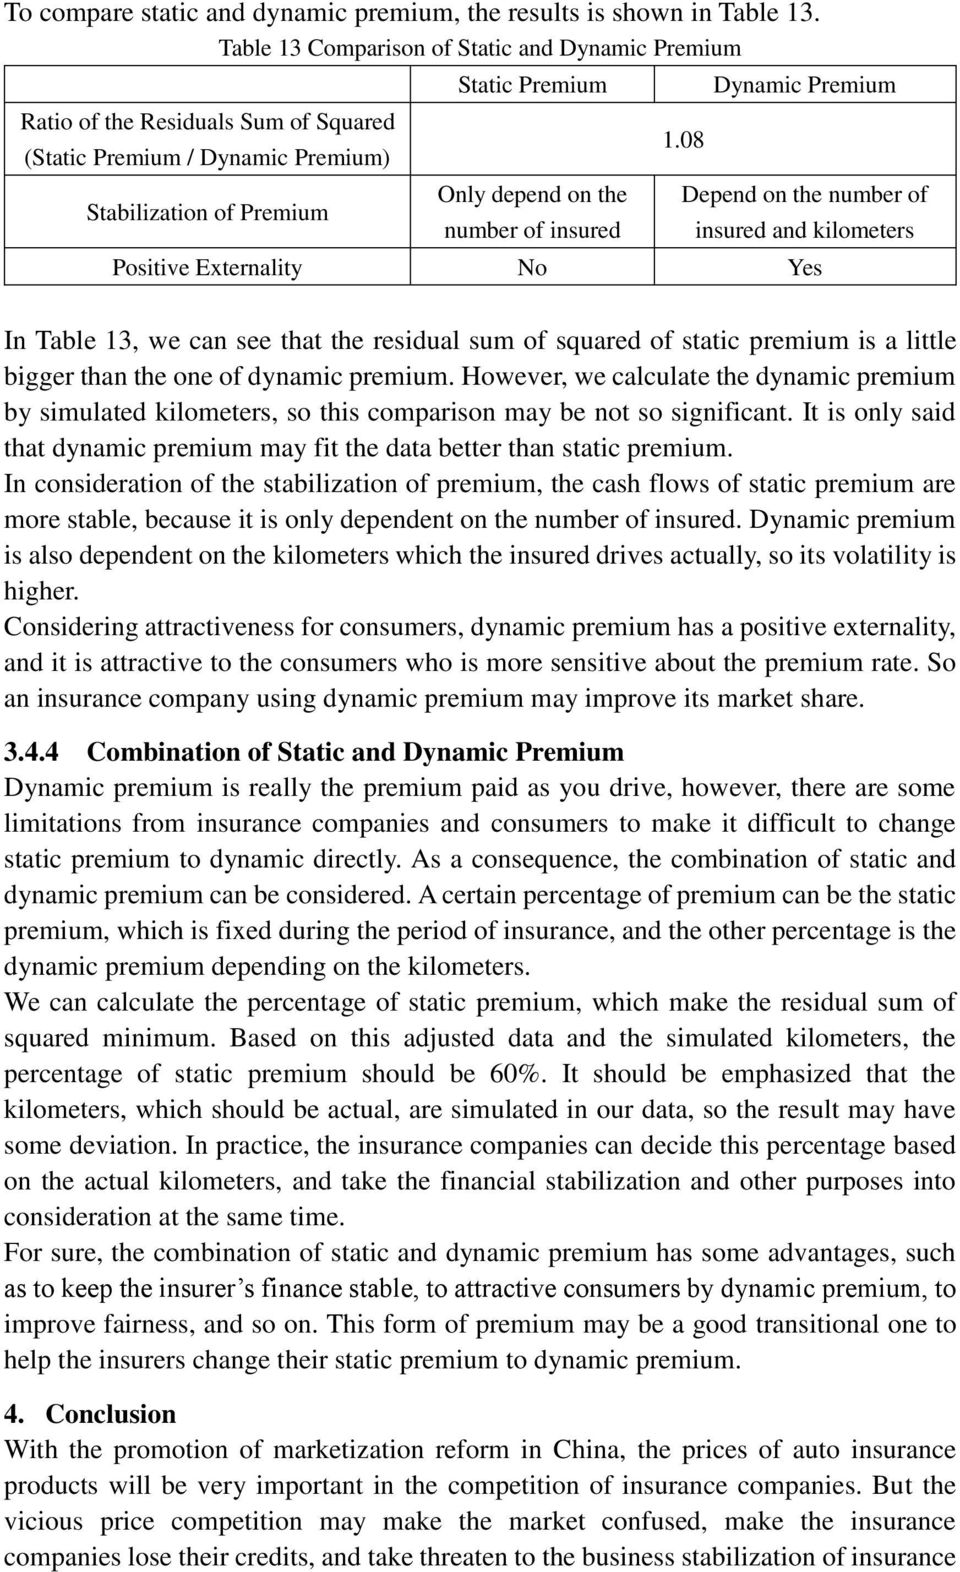 1.08 Dynamic Premium Depend on the number of insured and kilometers Positive Externality No Yes In Table 13, we can see that the residual sum of squared of static premium is a little bigger than the